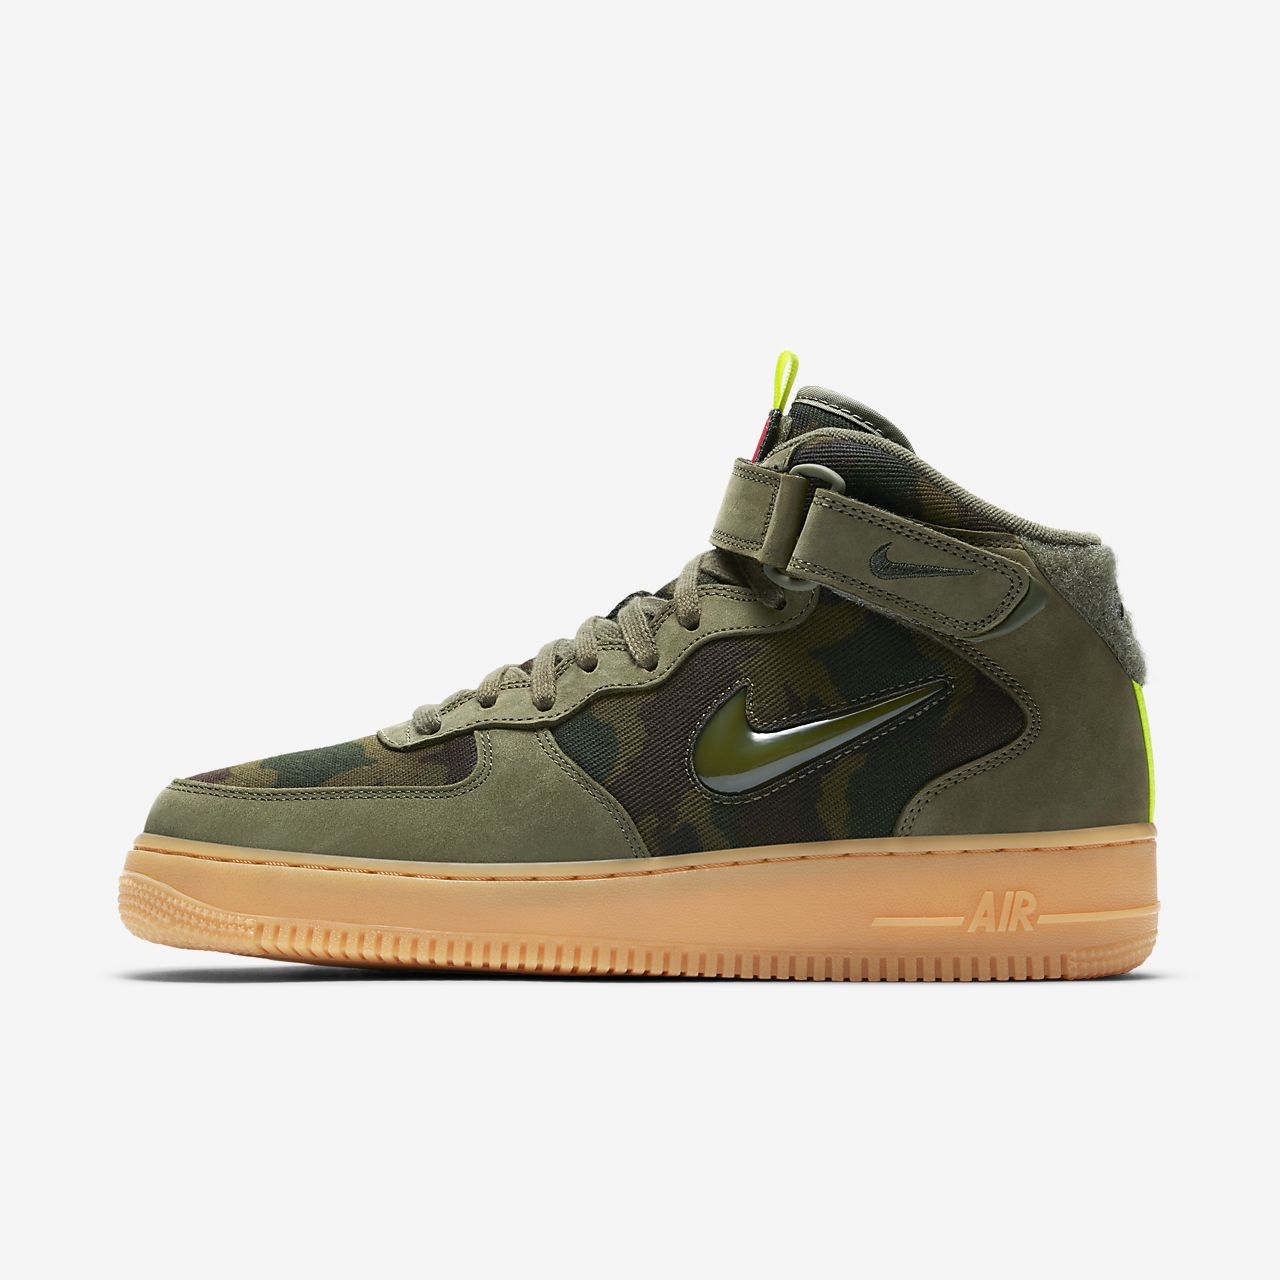 buy online a85db a20c3 ... sale nike air force 1 jewel mid mens shoe a1627 3d272